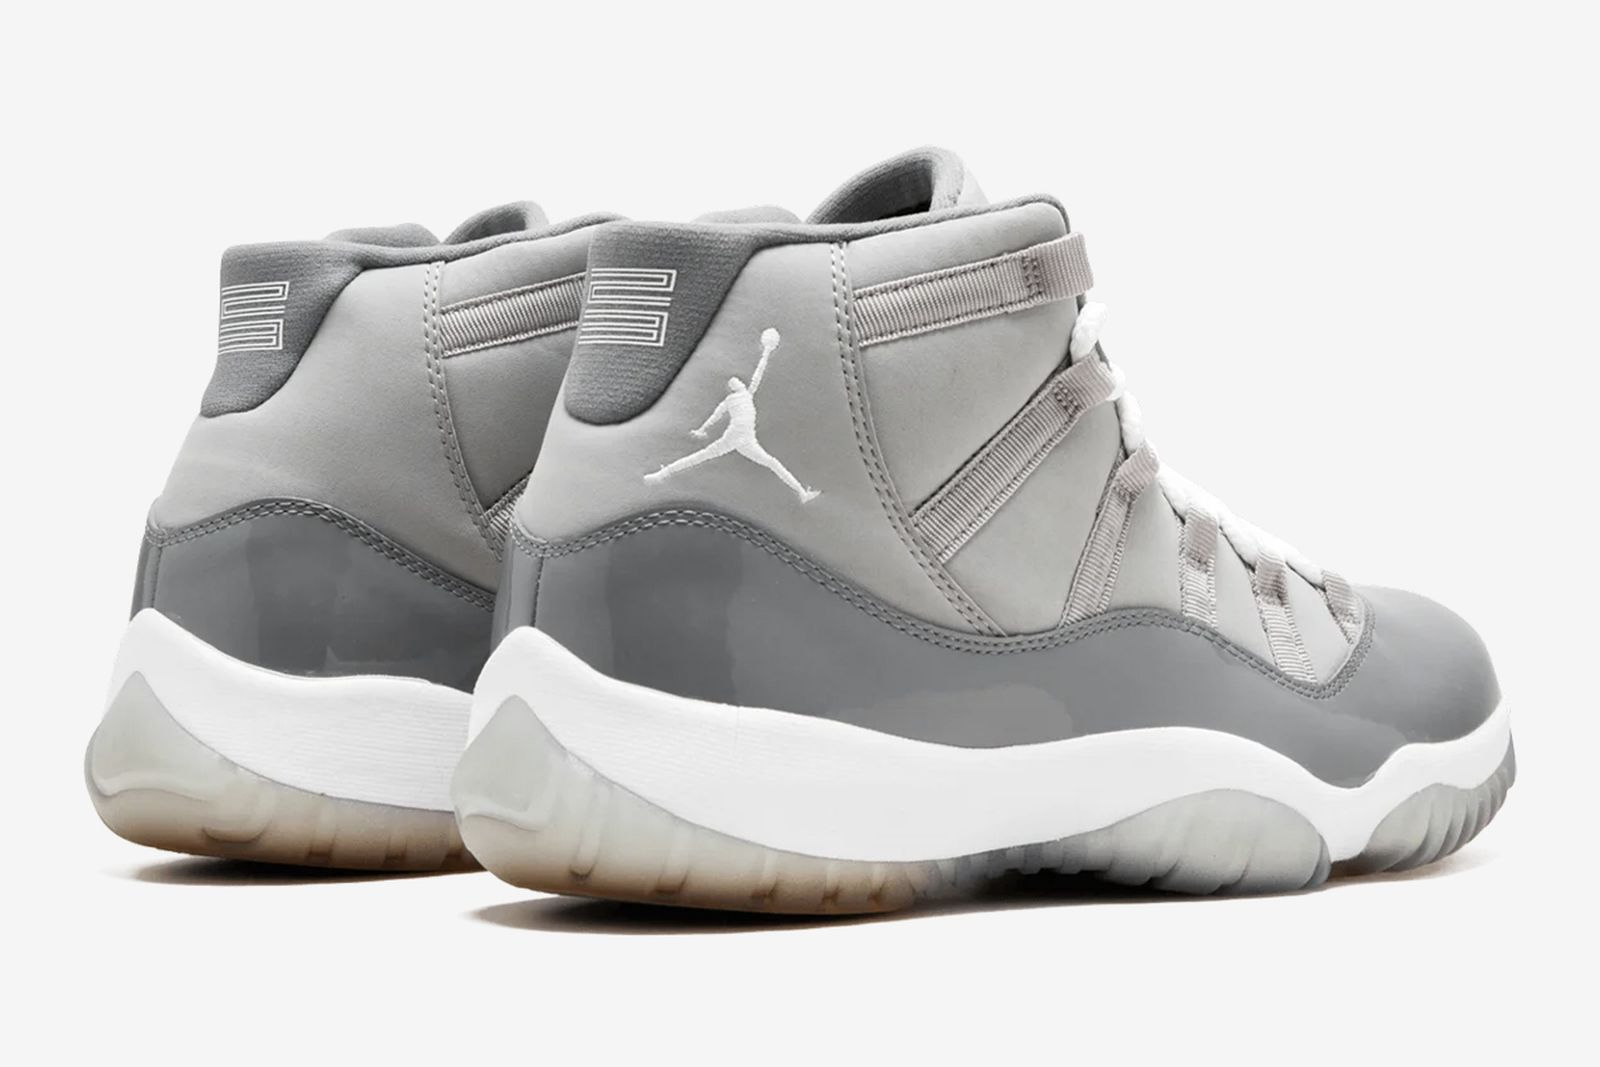 nike-air-jordan-11-cool-grey-2021-release-rumor-04